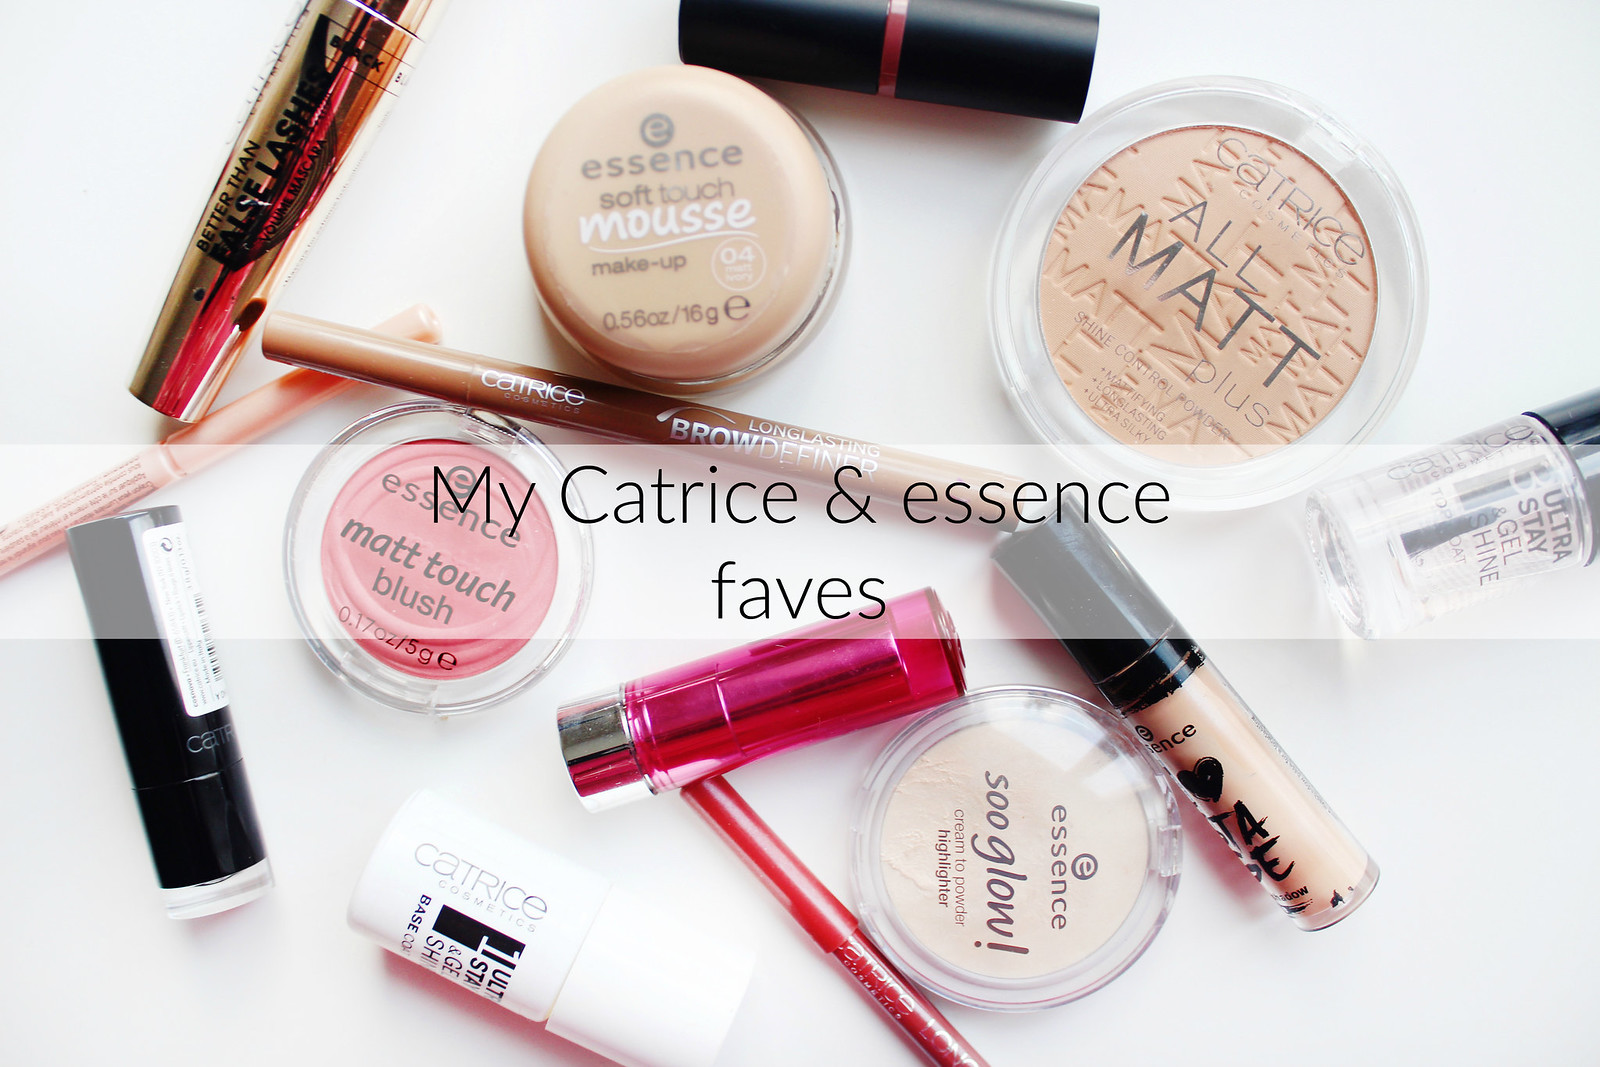 My essence and catrice favorites